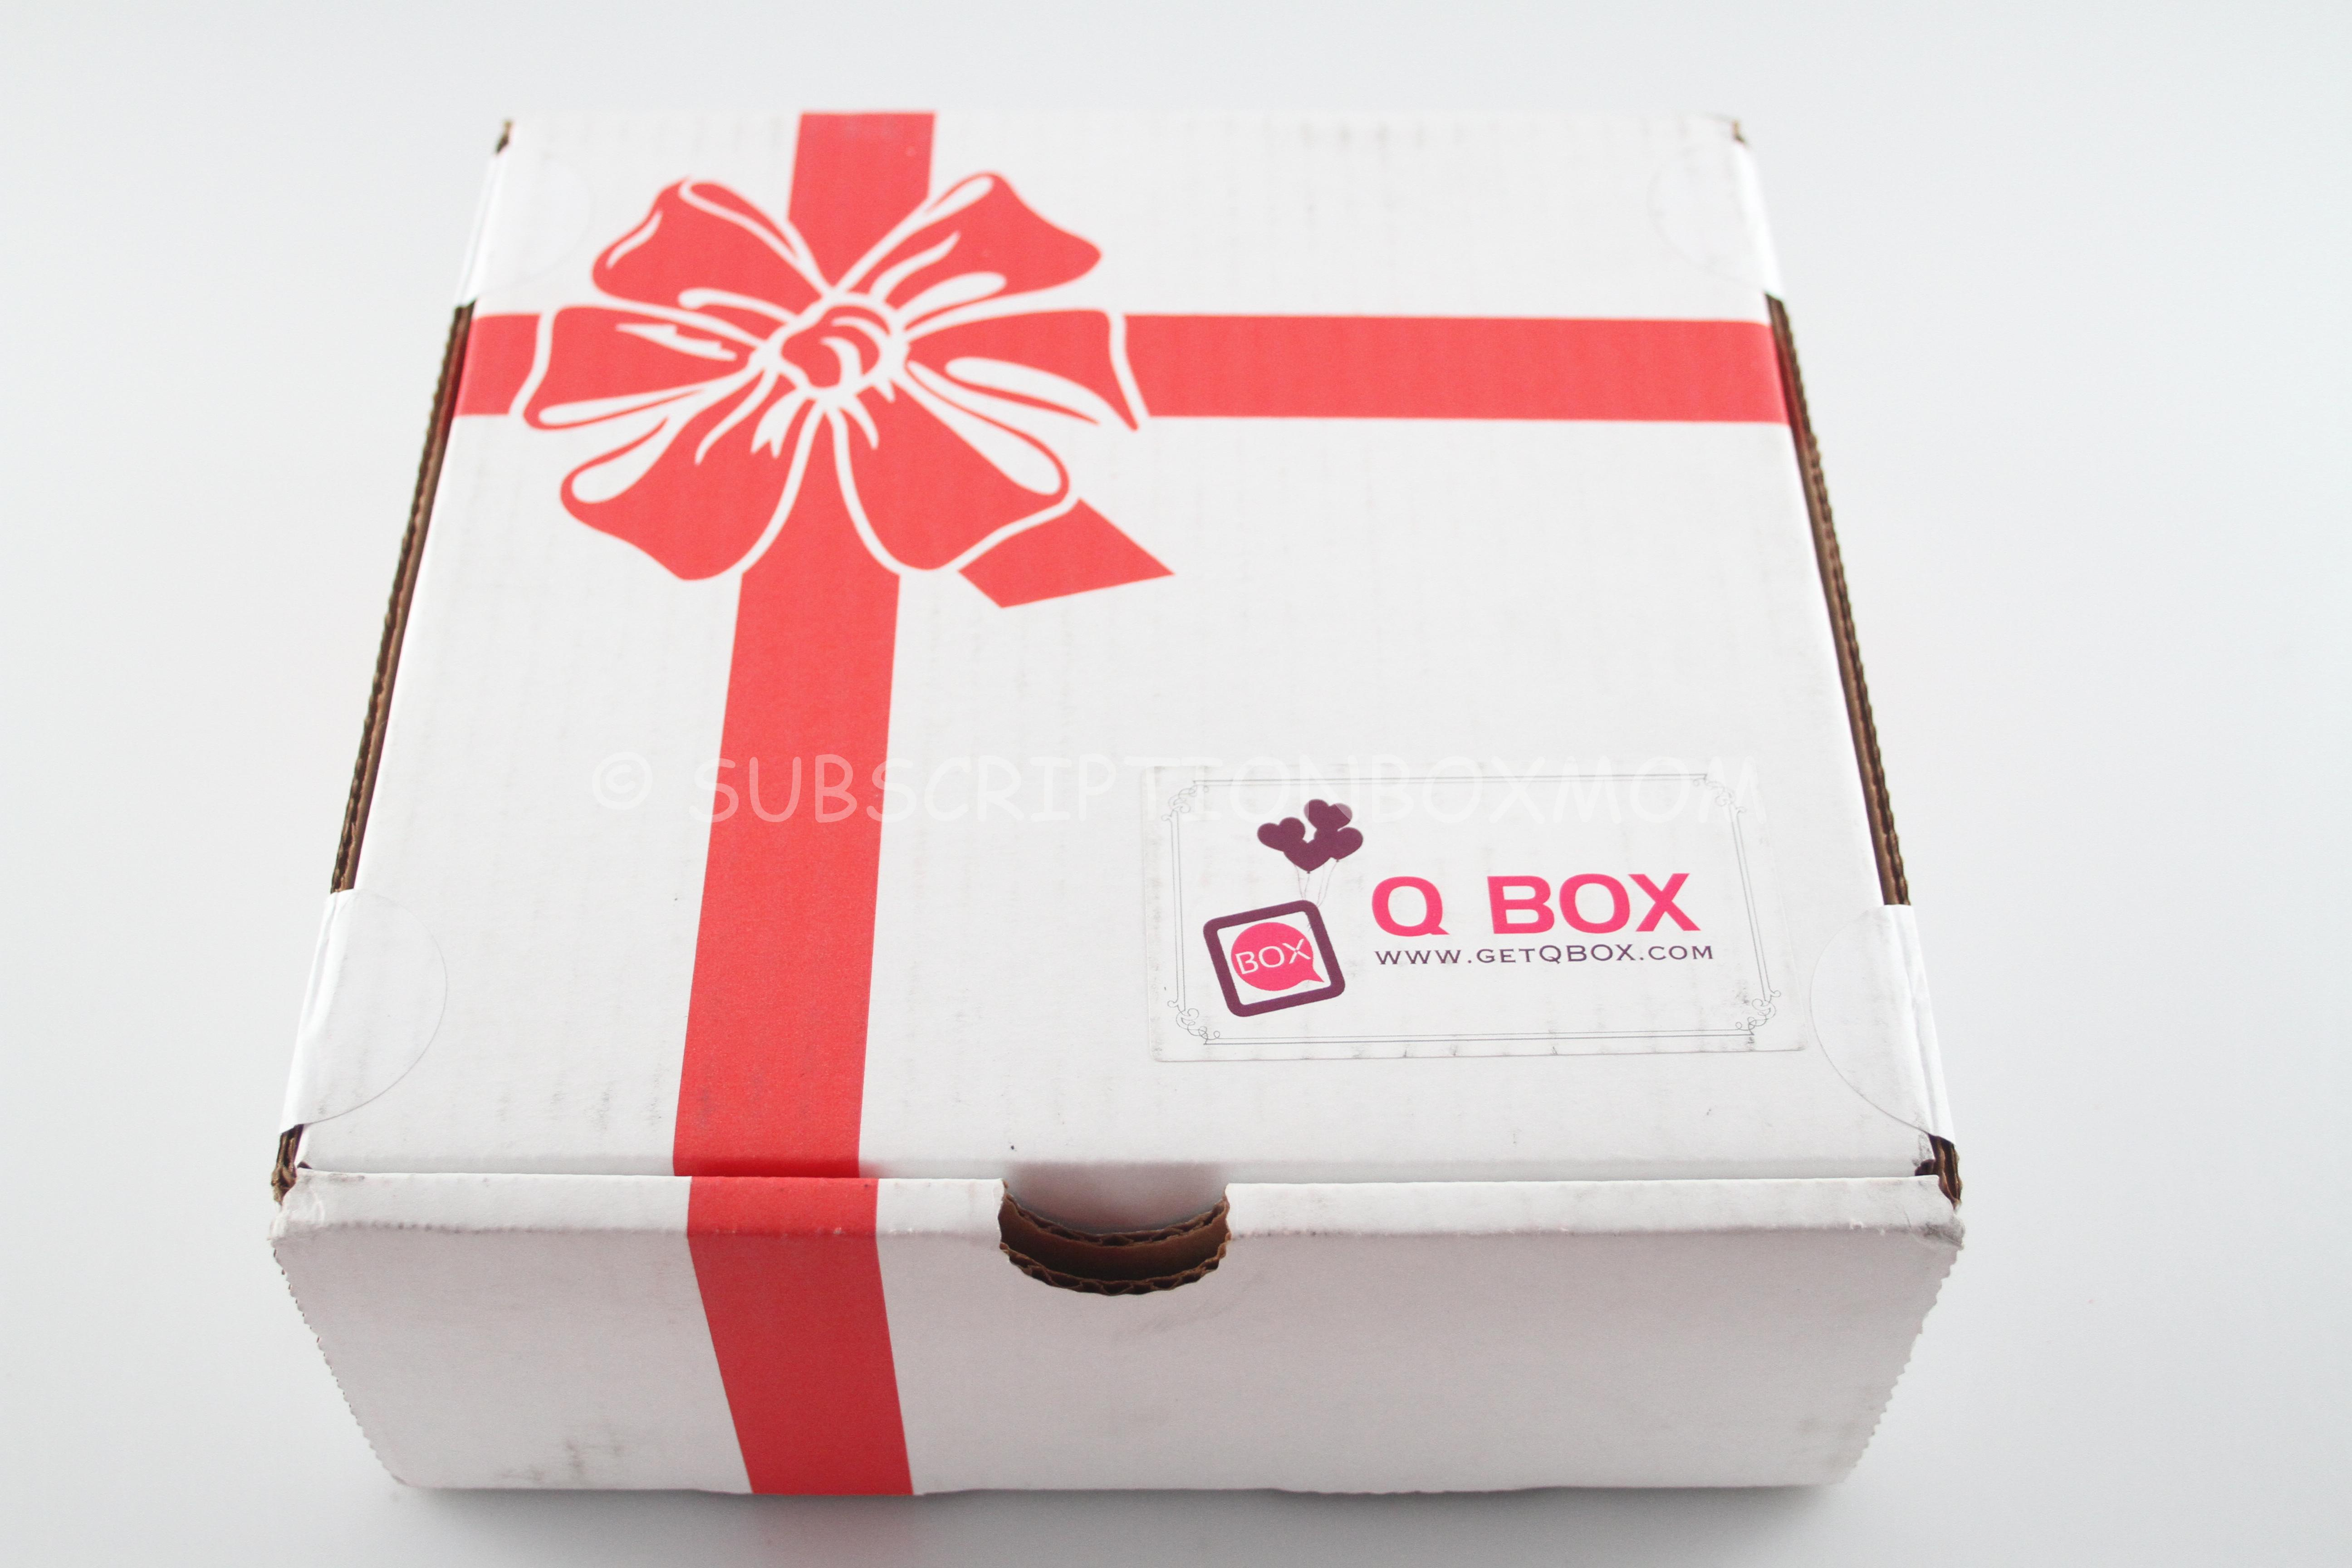 Q Box July 2014 Review - Discount Code - Japan/Korea Subscription ...